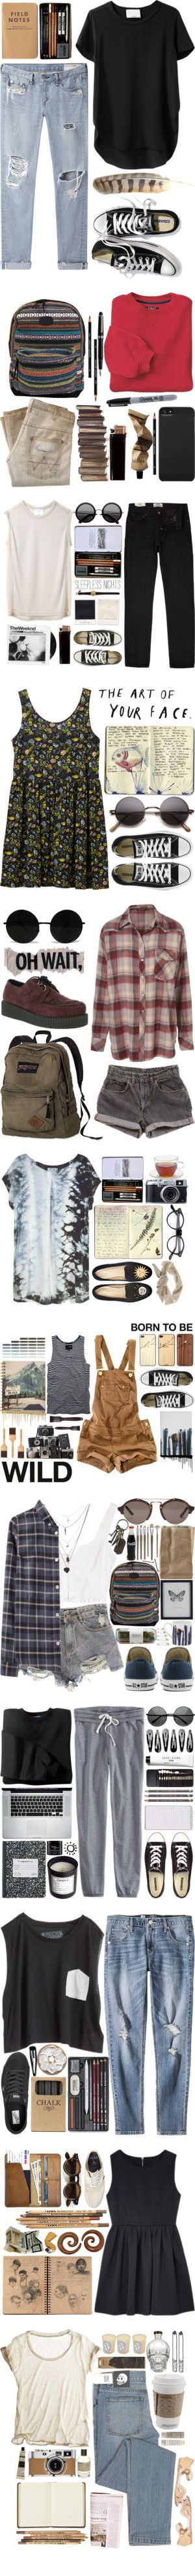 ART COLLEGE STUDENT OUTFITS by hey-there-deliah on Polyvore featuring 3.1 Phillip Lim, rag & bone/JEAN, Victoria's Secret, Wrangler, Aesop, Classique, O'Neill, Sharpie, Incase and INC International Concepts